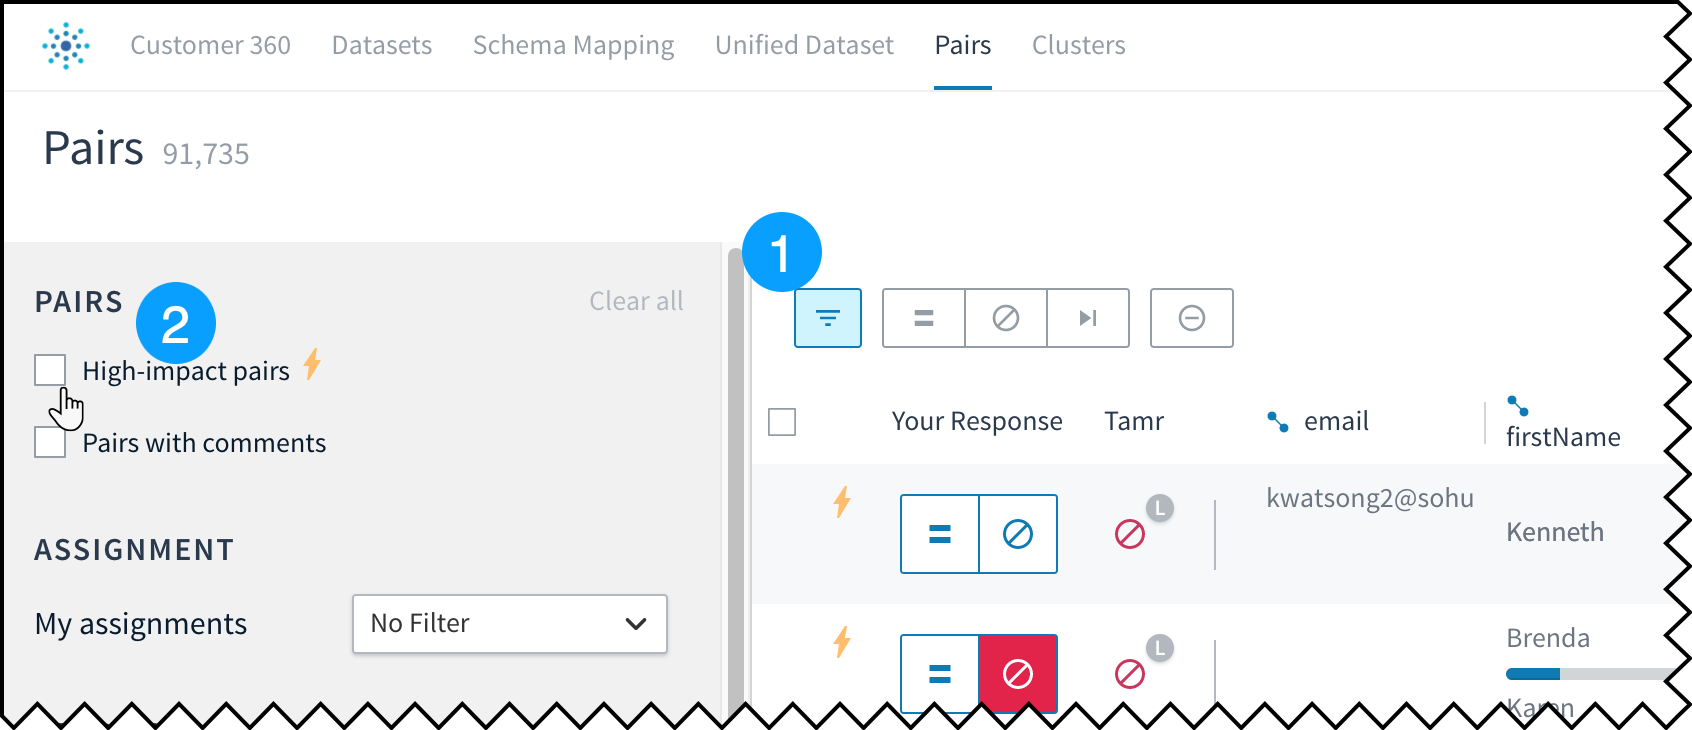 Filtering to high-impact pairs helps you prioritize your work.